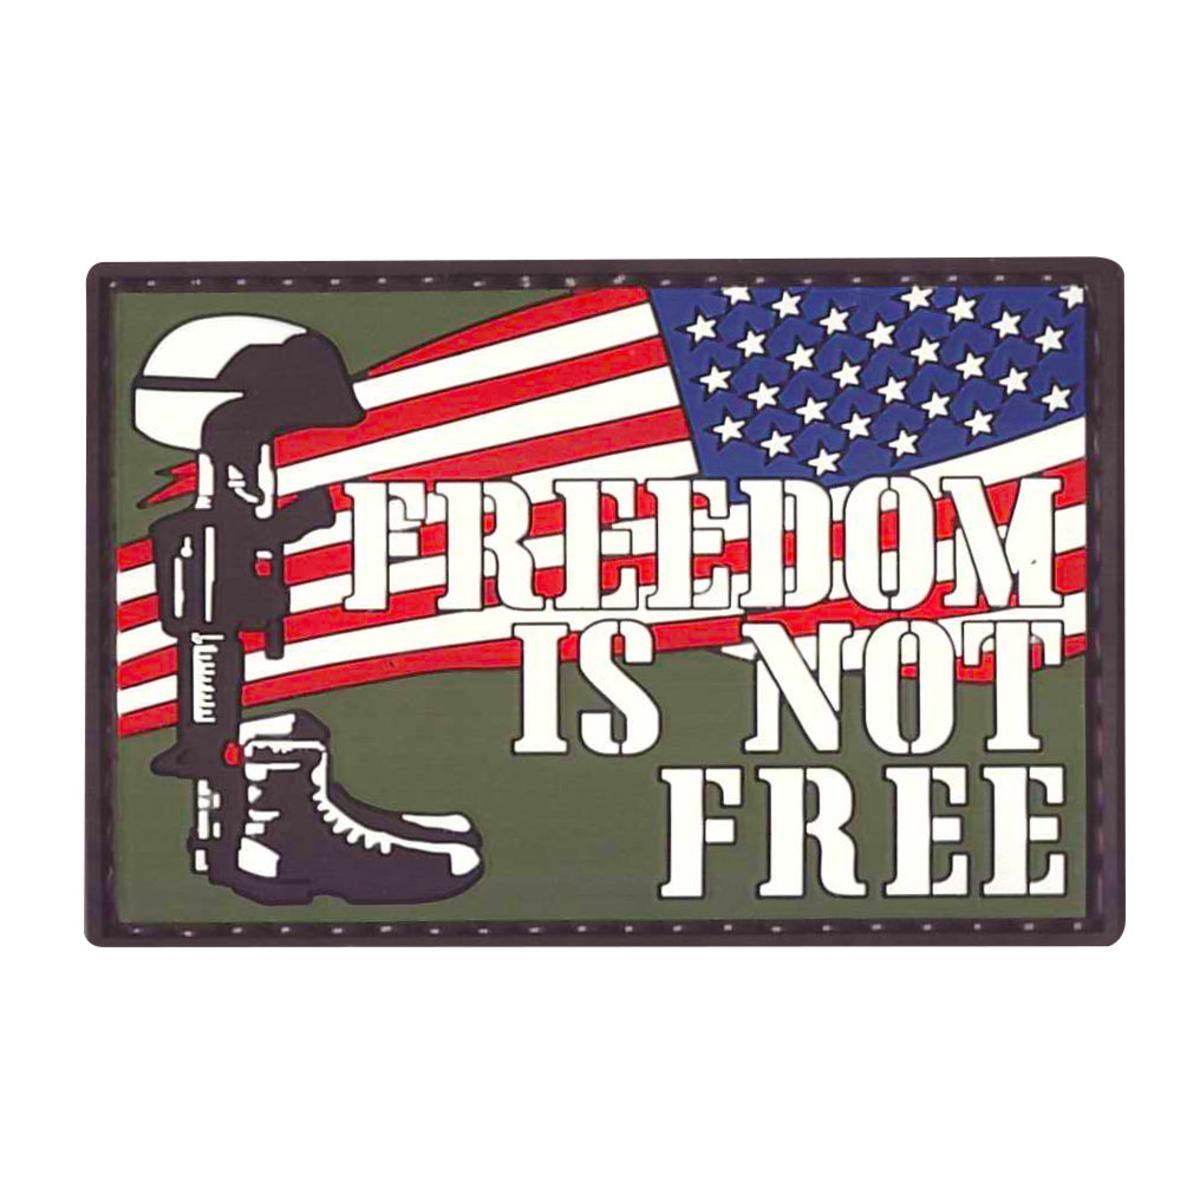 "5ive Star Gear Freedom Is Not Free PVC Patch, 2"" x 3"" Vinyl Morale Patch"